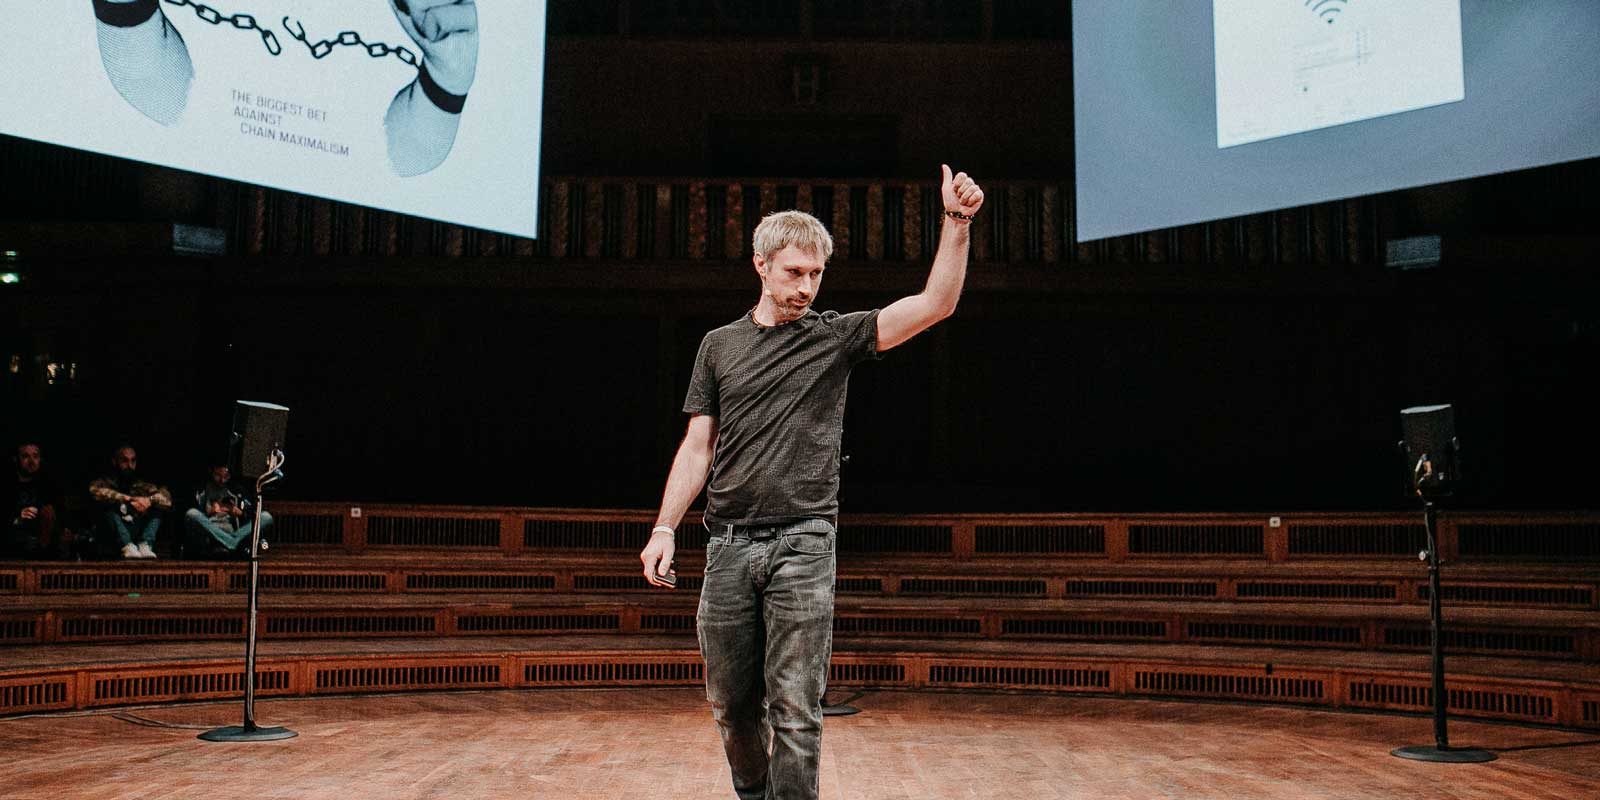 Gav Wood at Web3 Summit